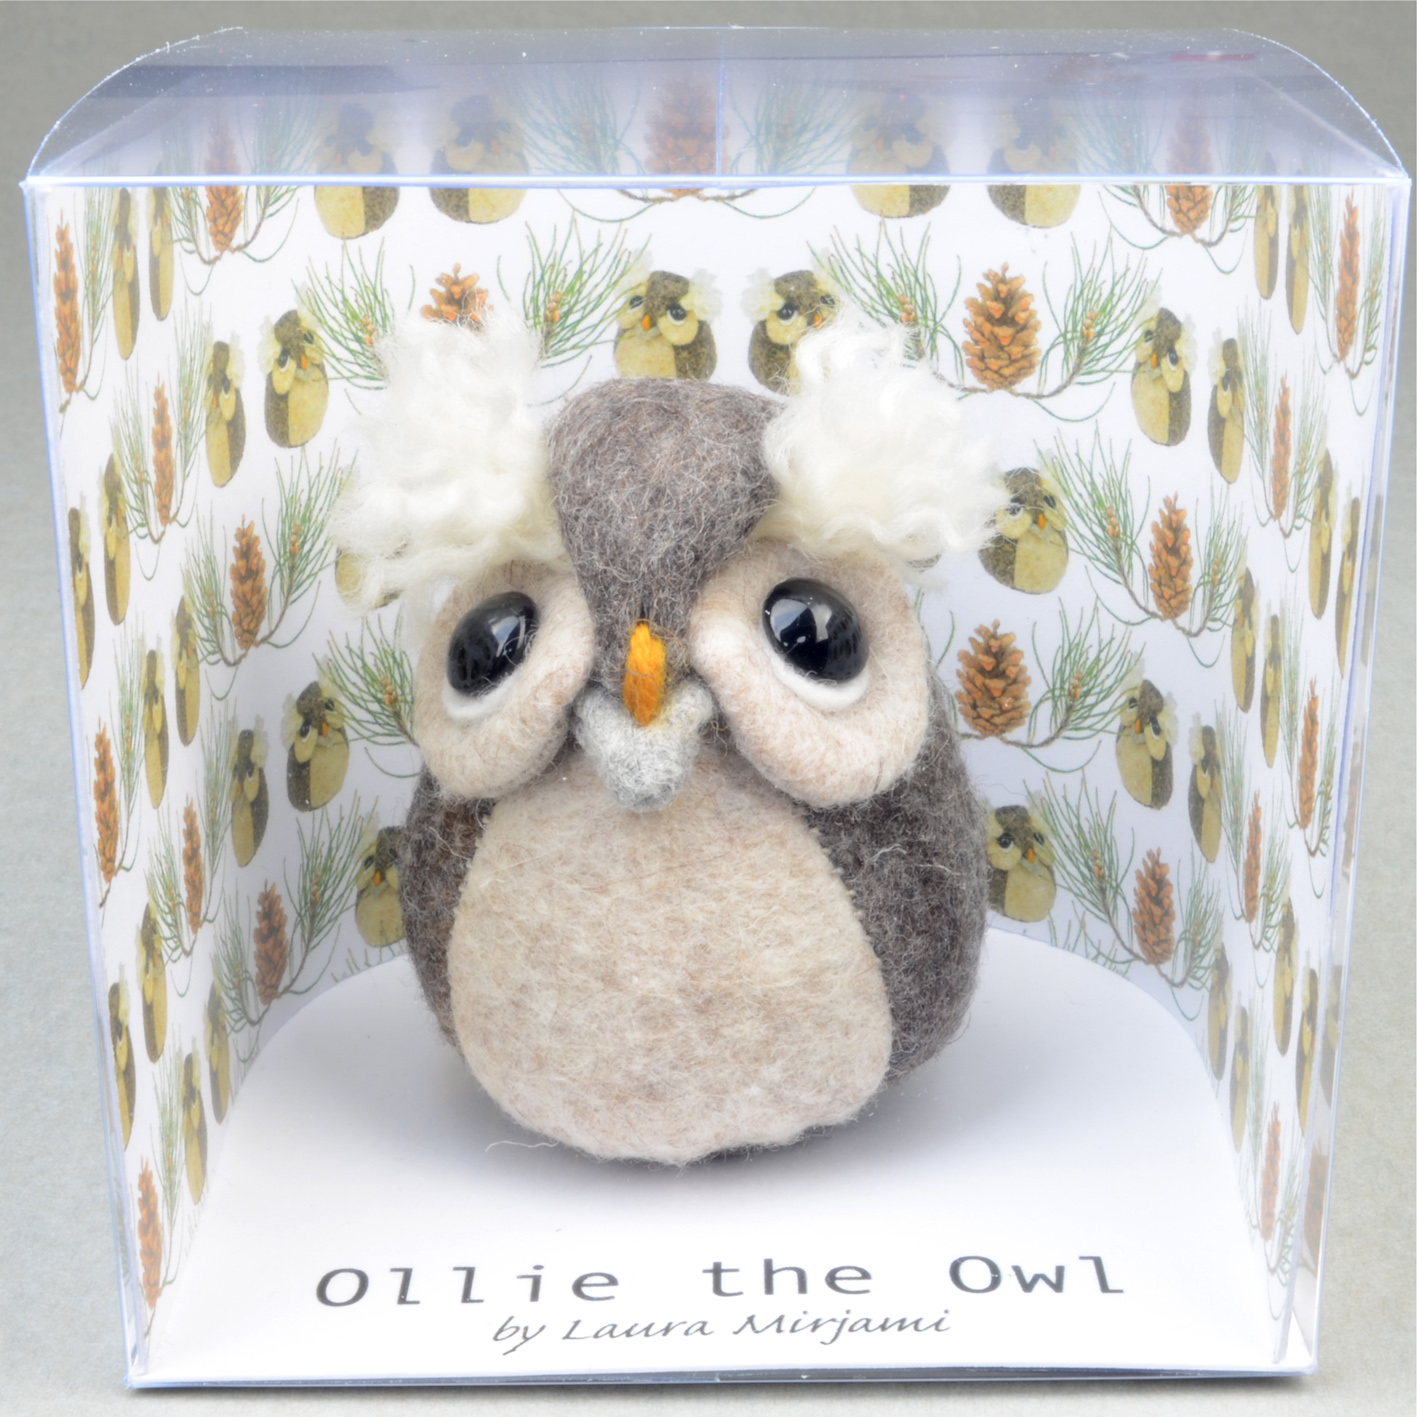 Handmade Ollie the Owl felt paperweight in a new packaging.